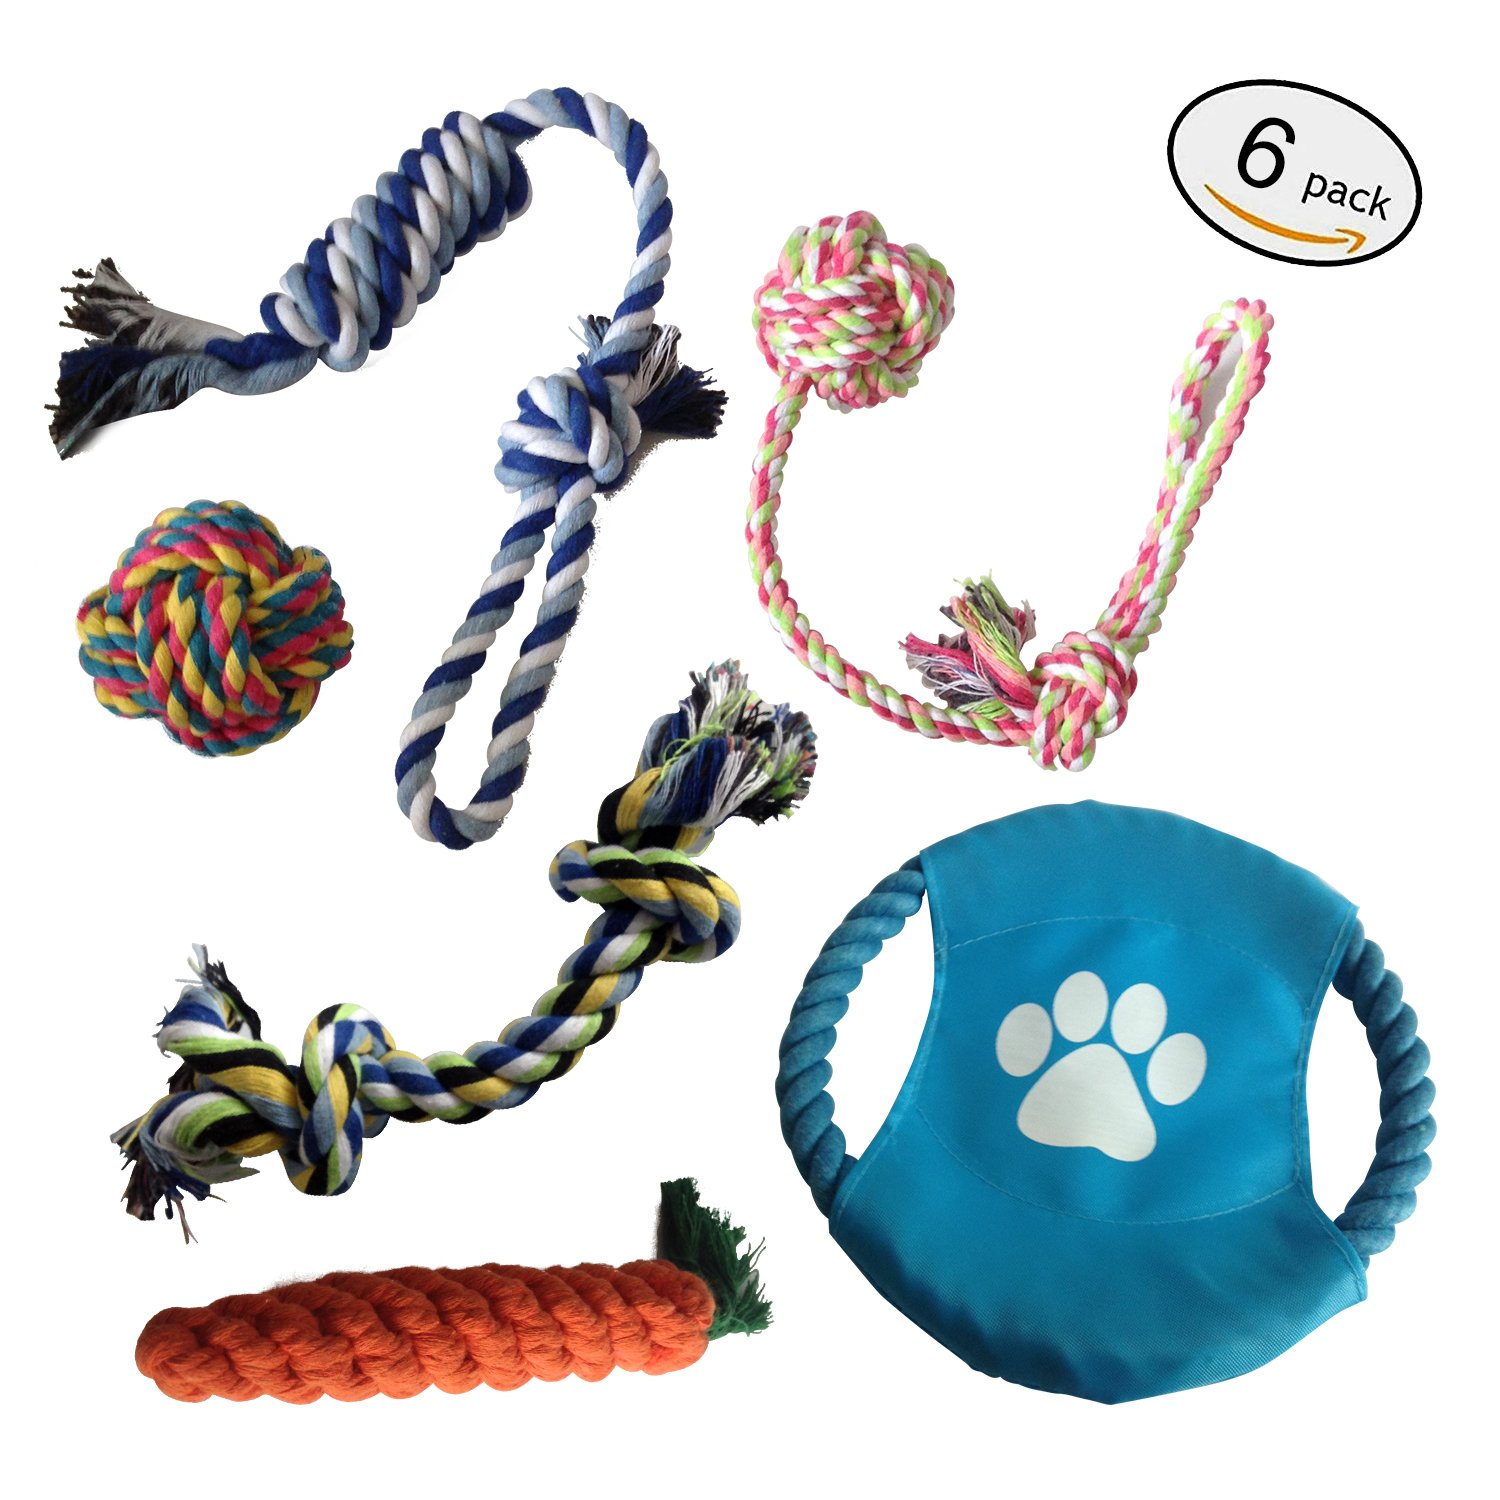 E-sport Durable Dog Chew Toys 6 Pack Interactive Dog Toys